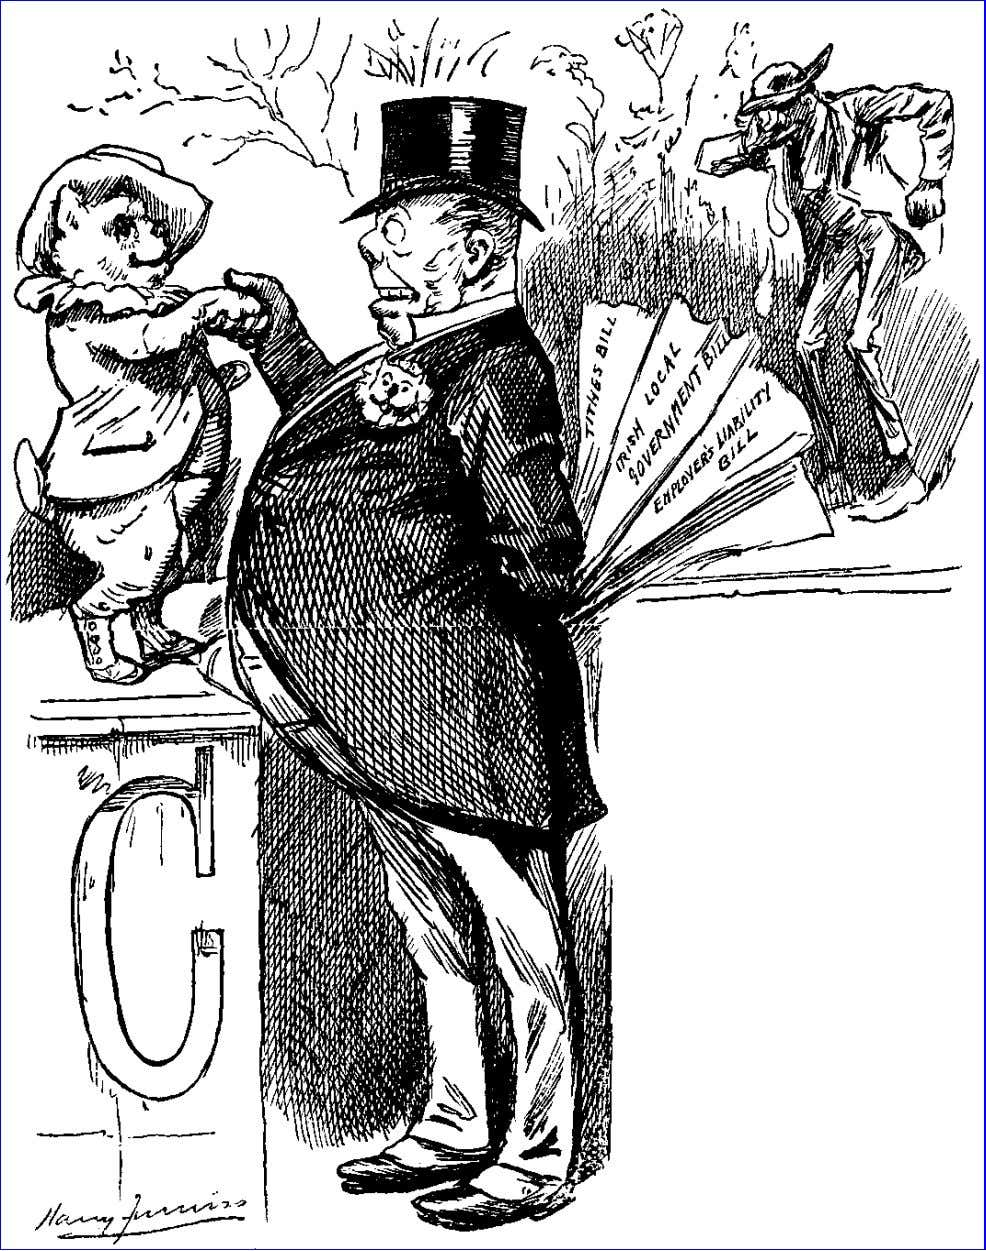 Punch, November 29, 1890. Charmed to have a visit from OLD MORALITY to-day. Most kind of